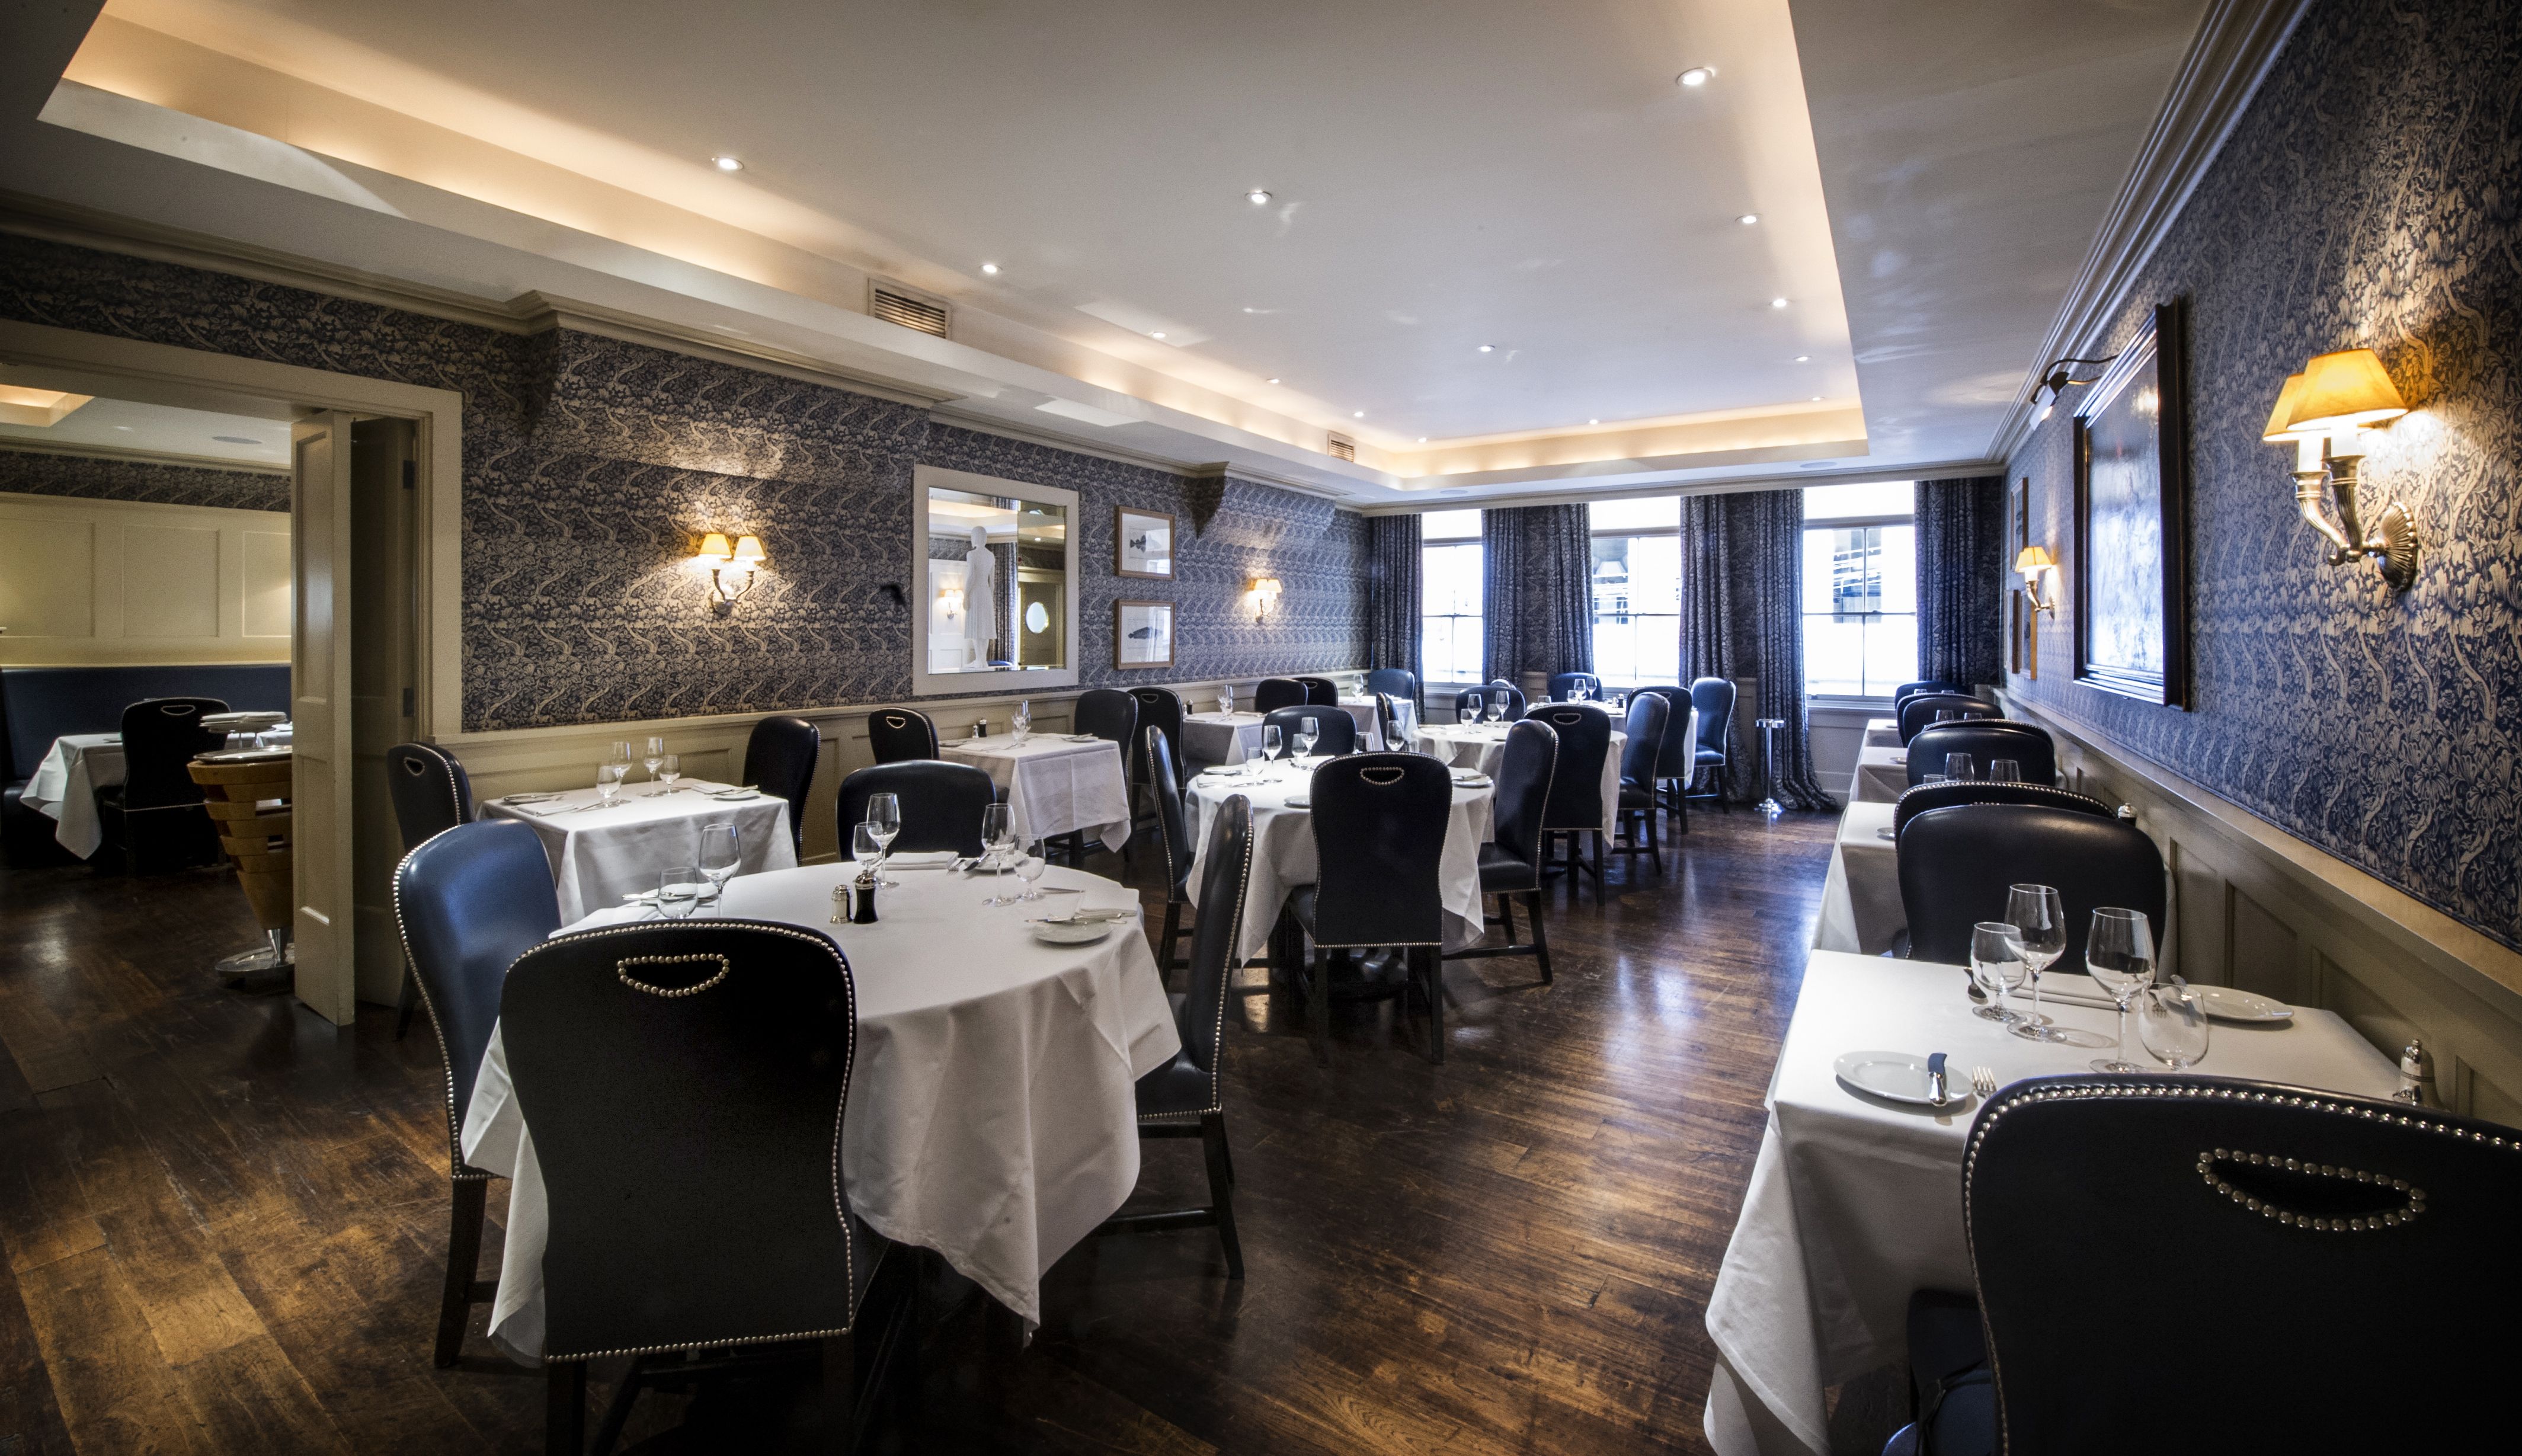 Bentleys oyster bar and grill image gallery and photos w1b 4dg london view - Restaurant bar and grill ...